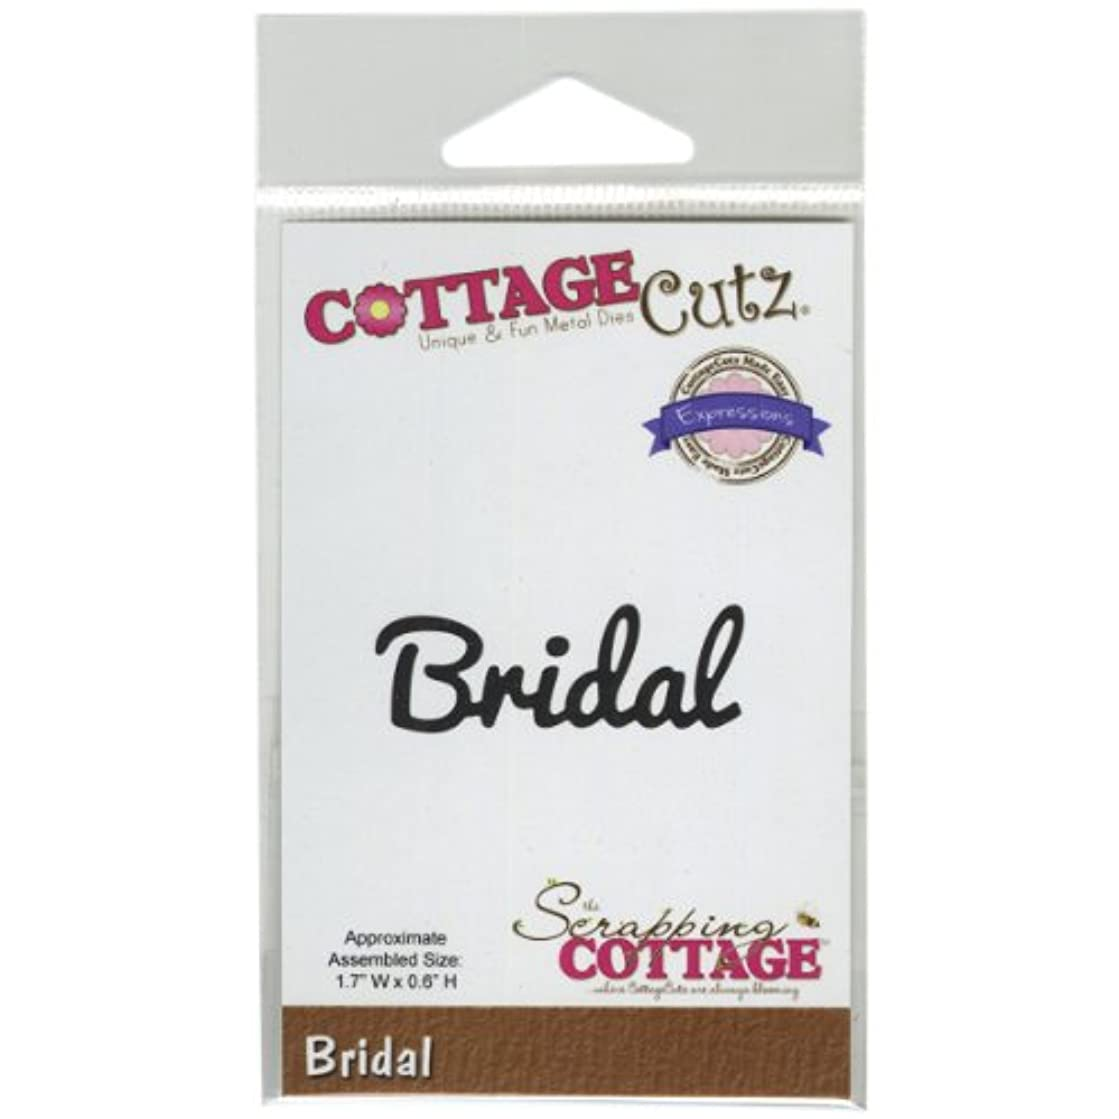 CottageCutz Expressions Die Cuts, 1.7 by 0.6-Inch, Bridal